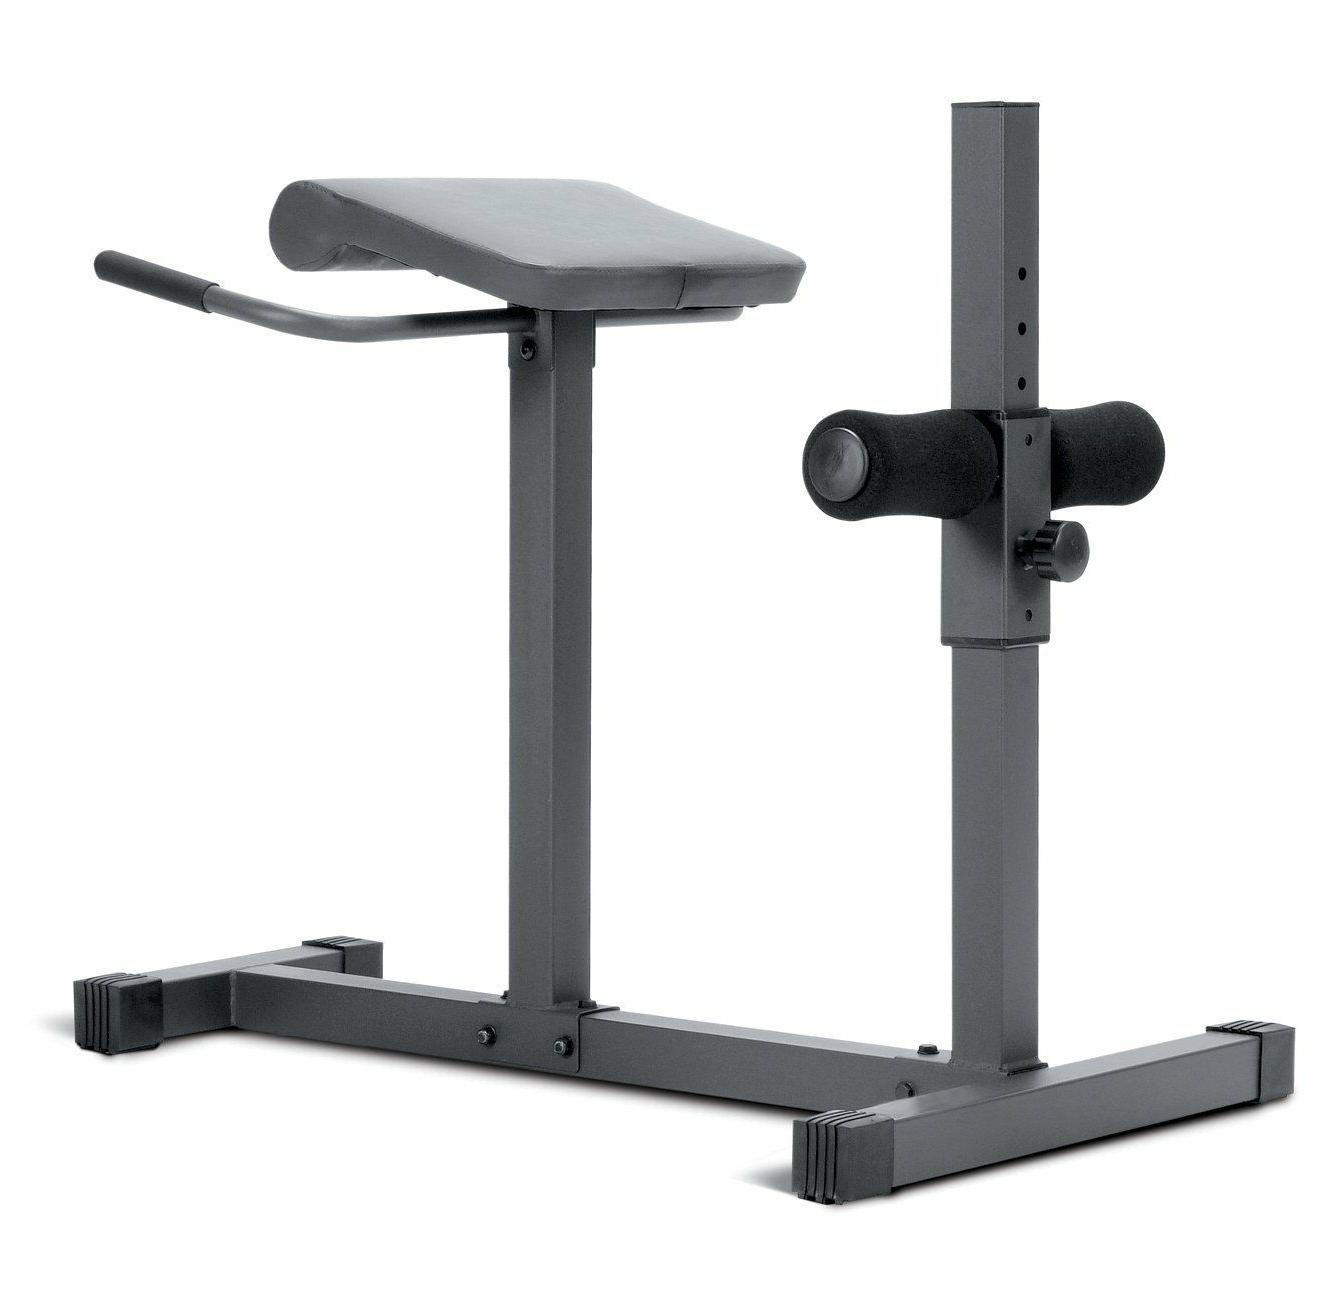 Marcy Adjustable Chair Hyper Bench JD3.1